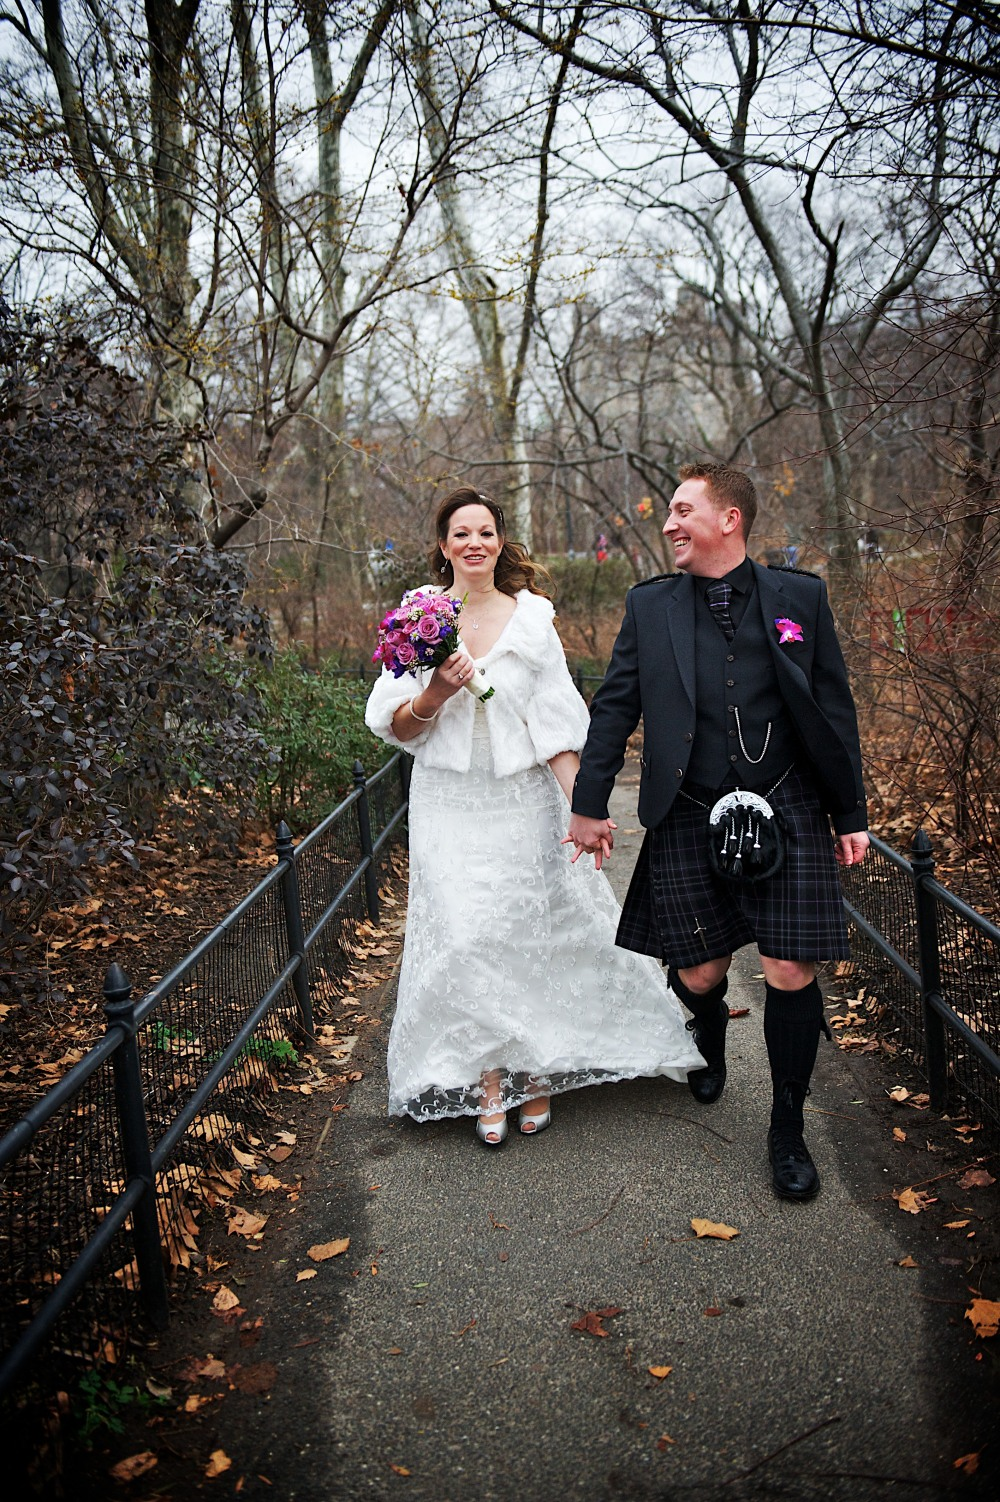 Suzanne and Stuart get married in NYC